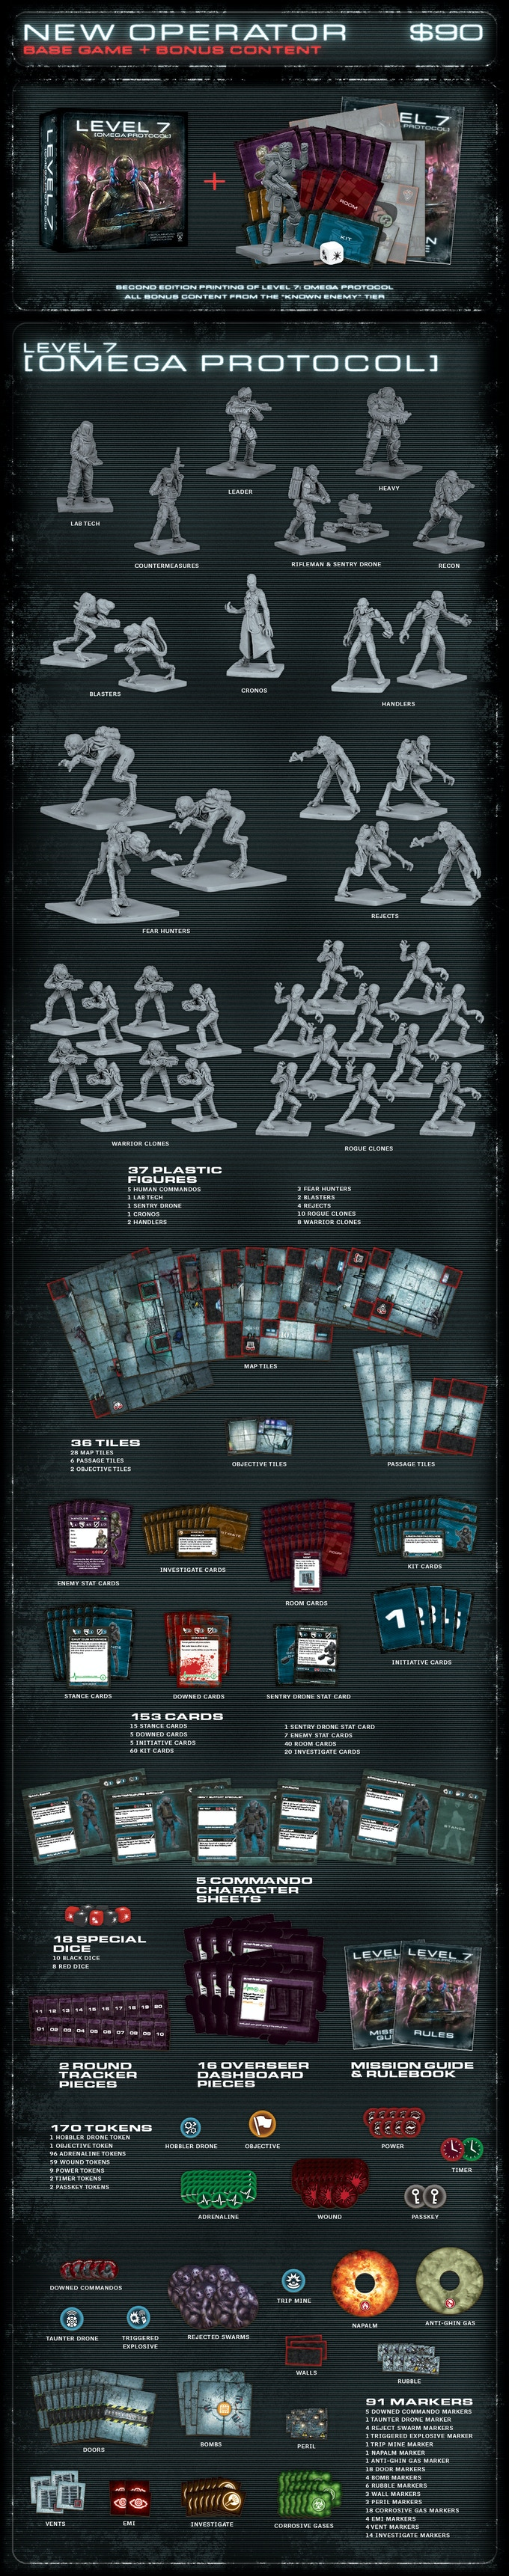 LEVEL 7 [OMEGA PROTOCOL] Board Game (2nd Edition) by